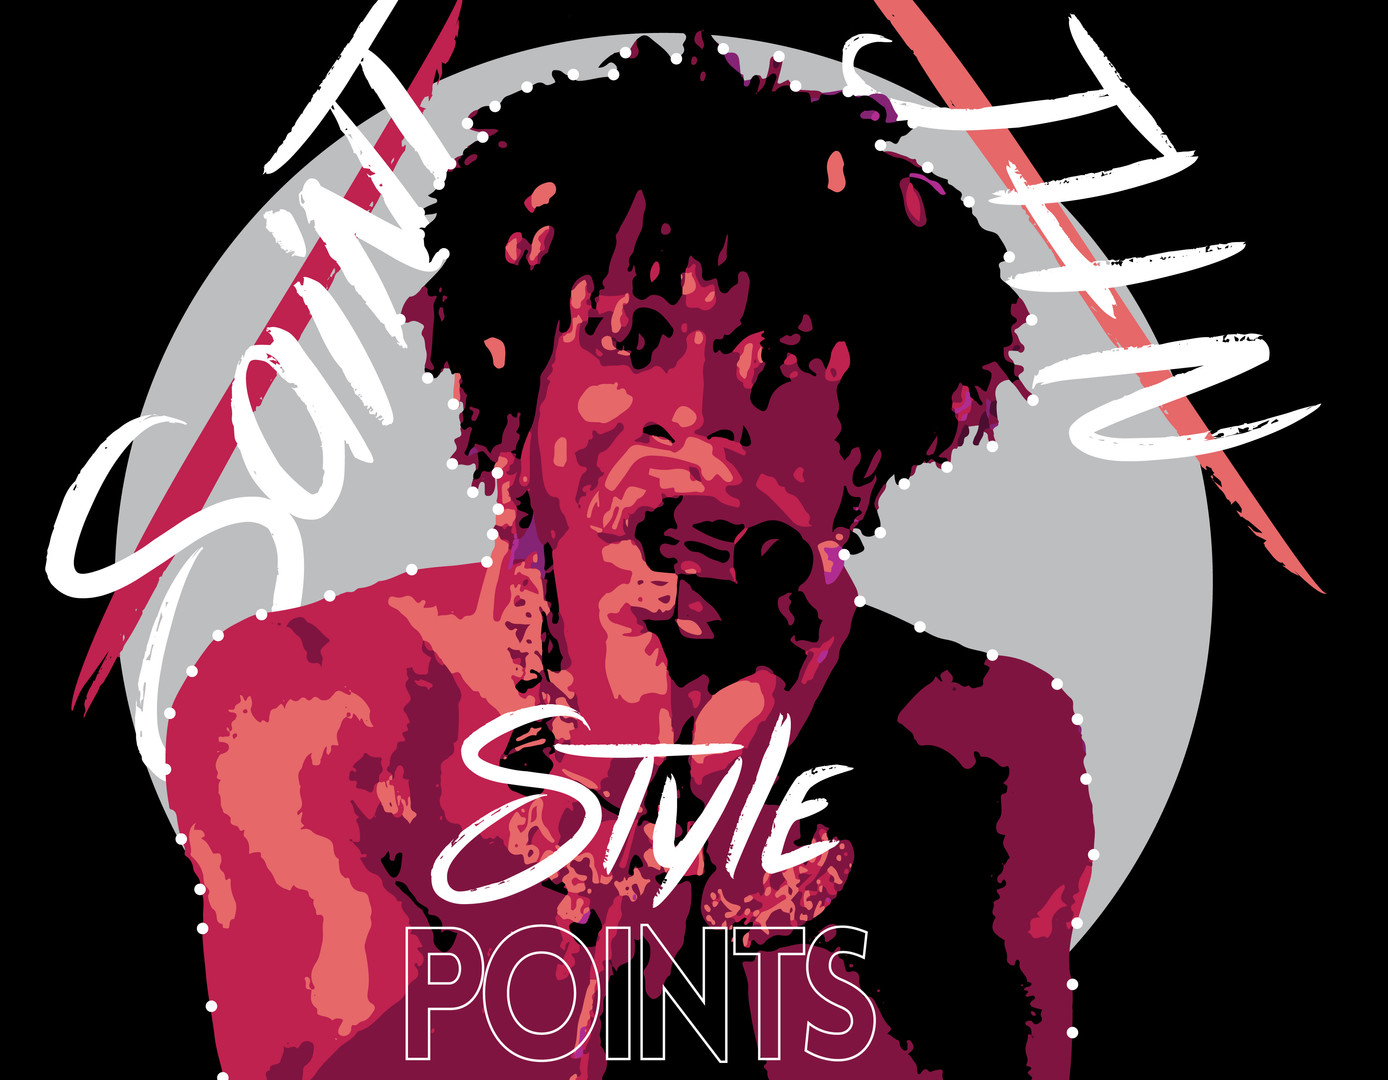 Style Points